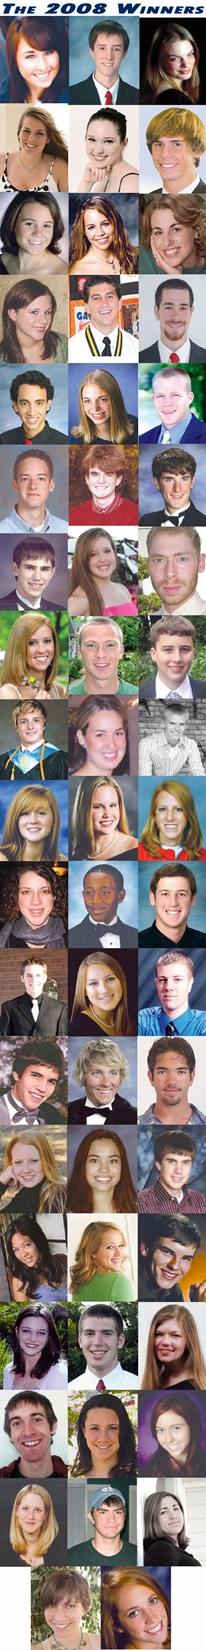 2008 scholarship winners